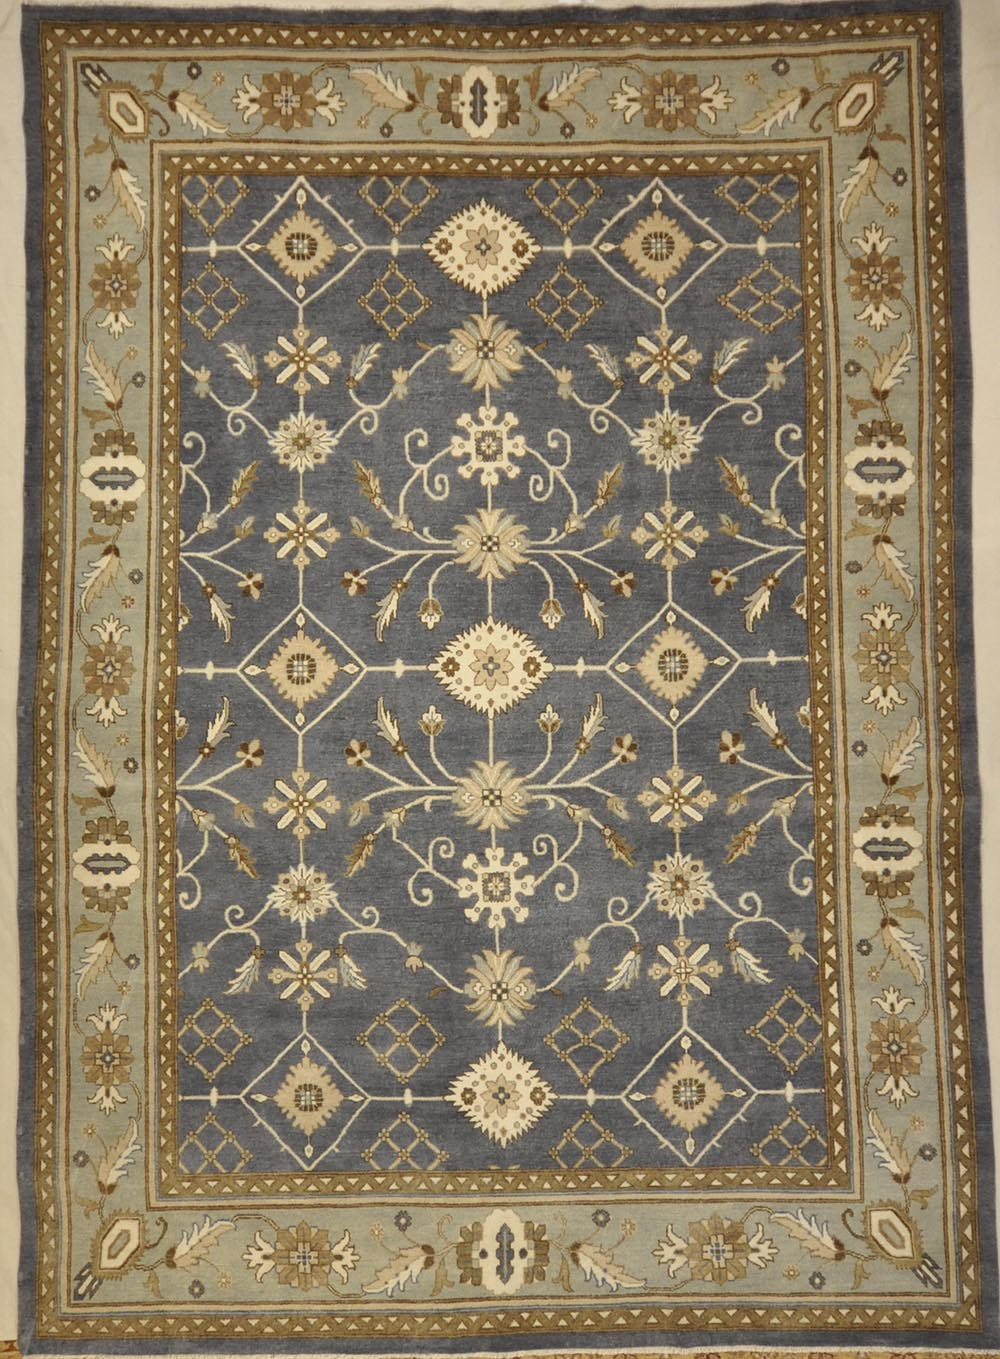 Fine Ziegler Usak Rugs and more oriental carpet 44907-